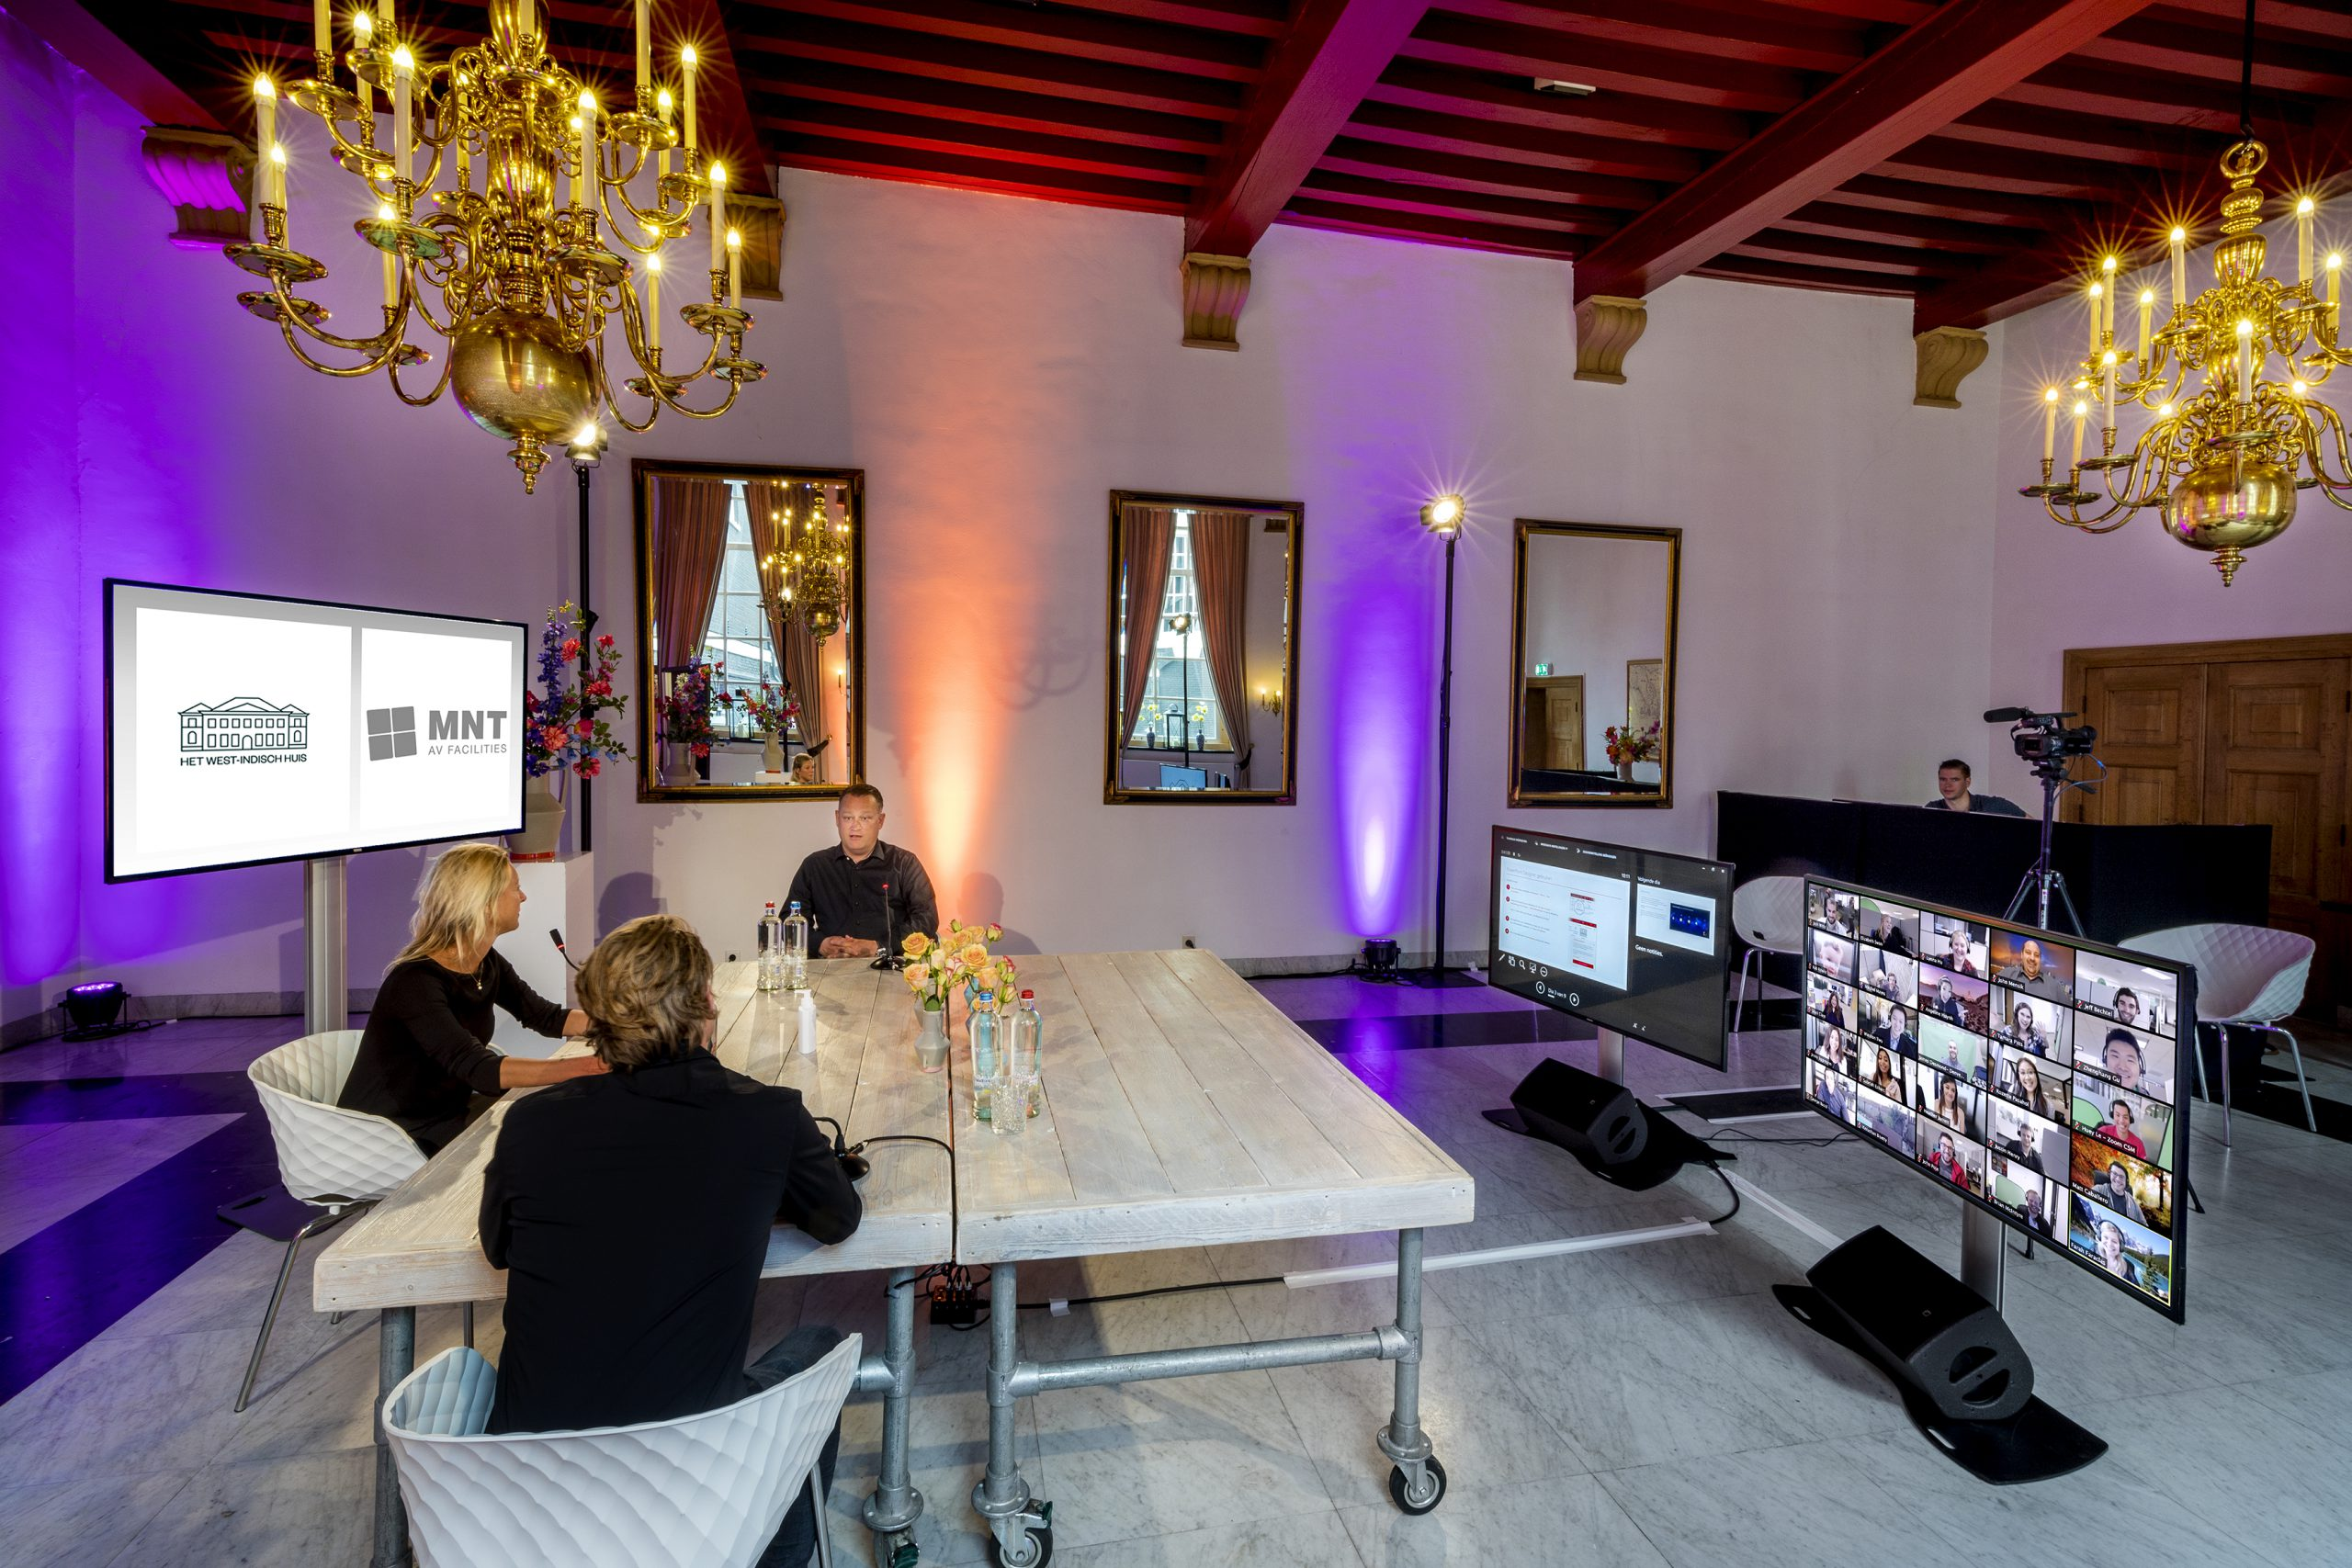 Cojan van Toor Professional Photography - oudewater -; NMT facilities; Diemen; Joure; West Indisch Huis Amsterdam; A mater of taste; van der kroft events, Wassenaar, cast studio; web stream; zoom conference; vergaderen, online meeting, #covit19